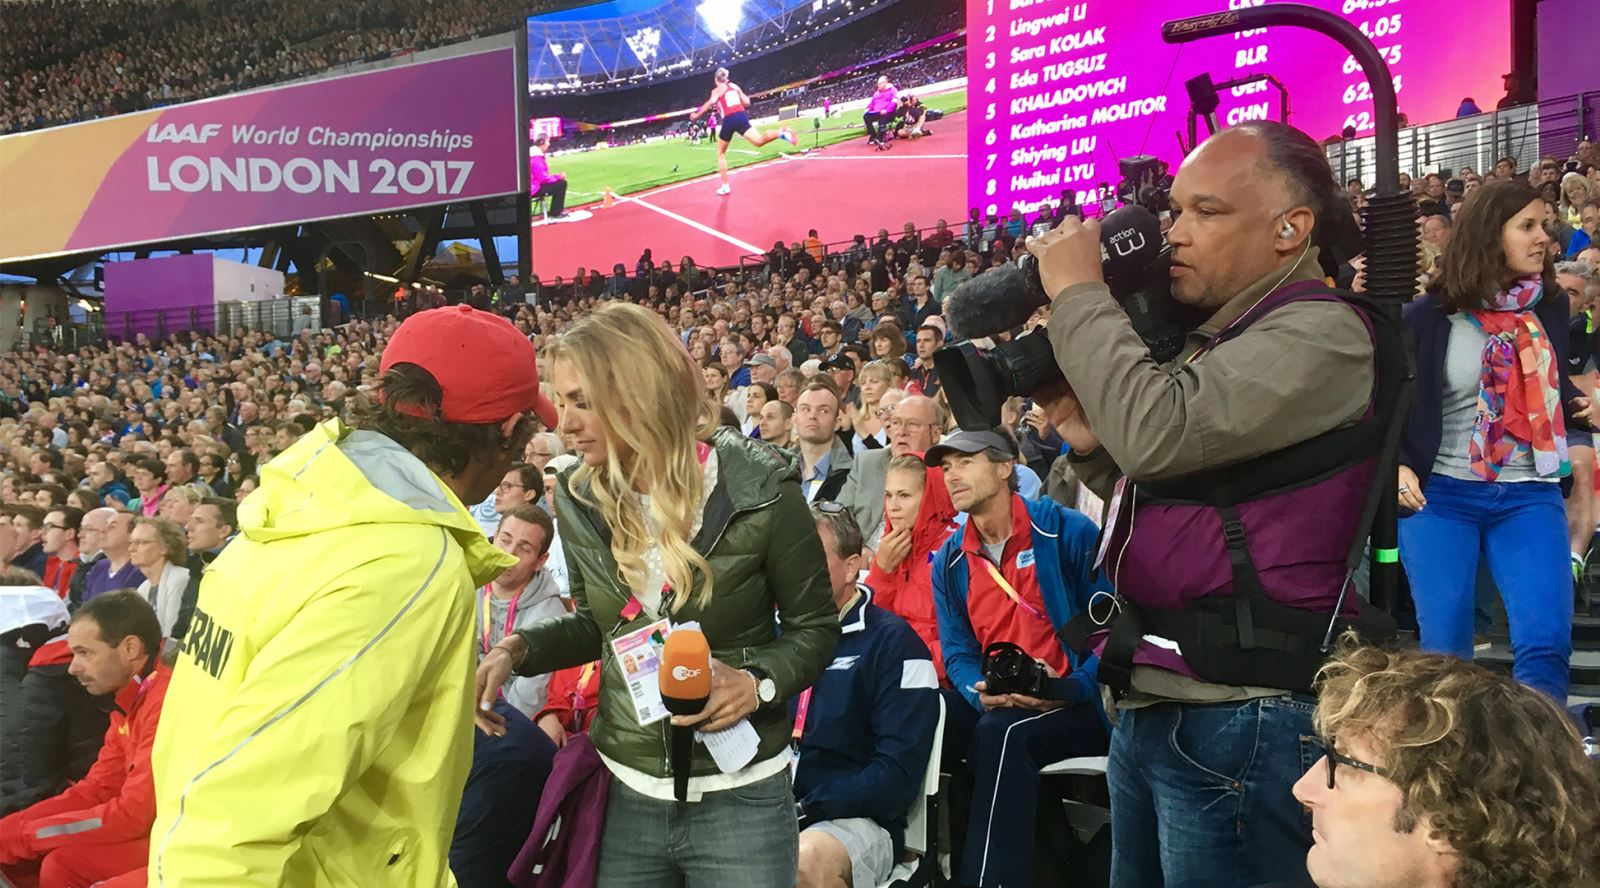 German crew for ZDF using Easyrig at the IAFF World Championships in the London Olympic Stadium